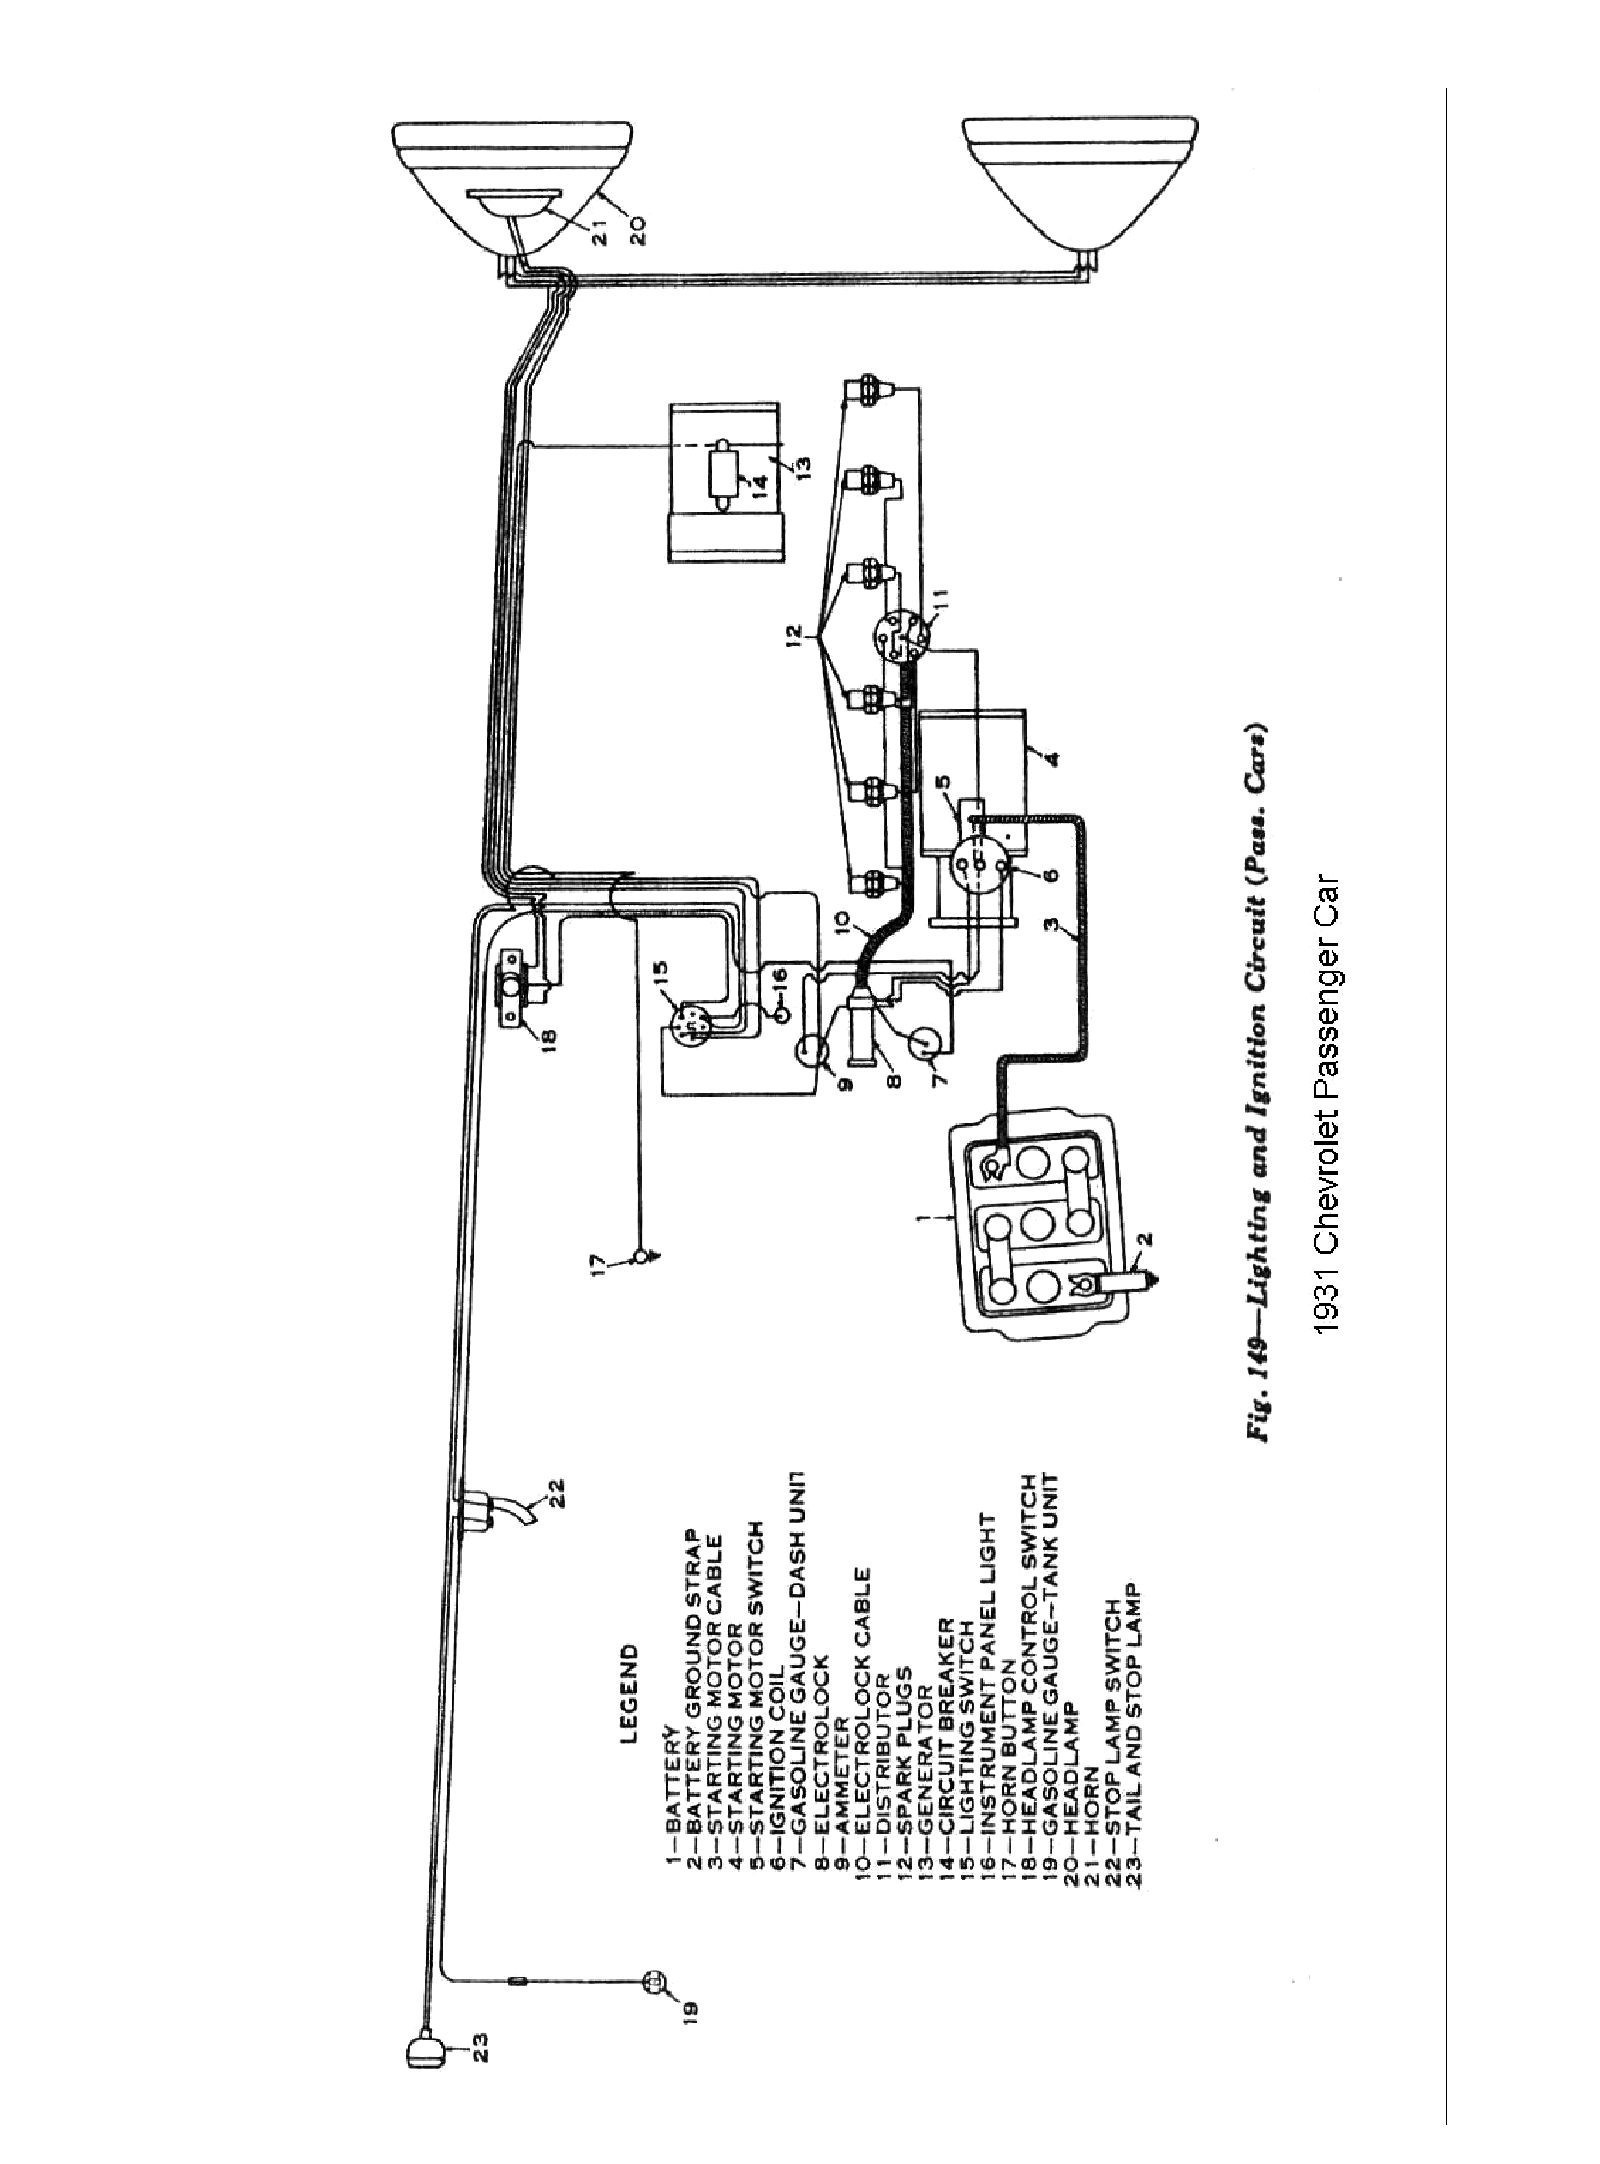 Ceiling Light Wiring Diagram Best Wiring Diagram Plug Switch Light New Chevy Wiring Diagrams